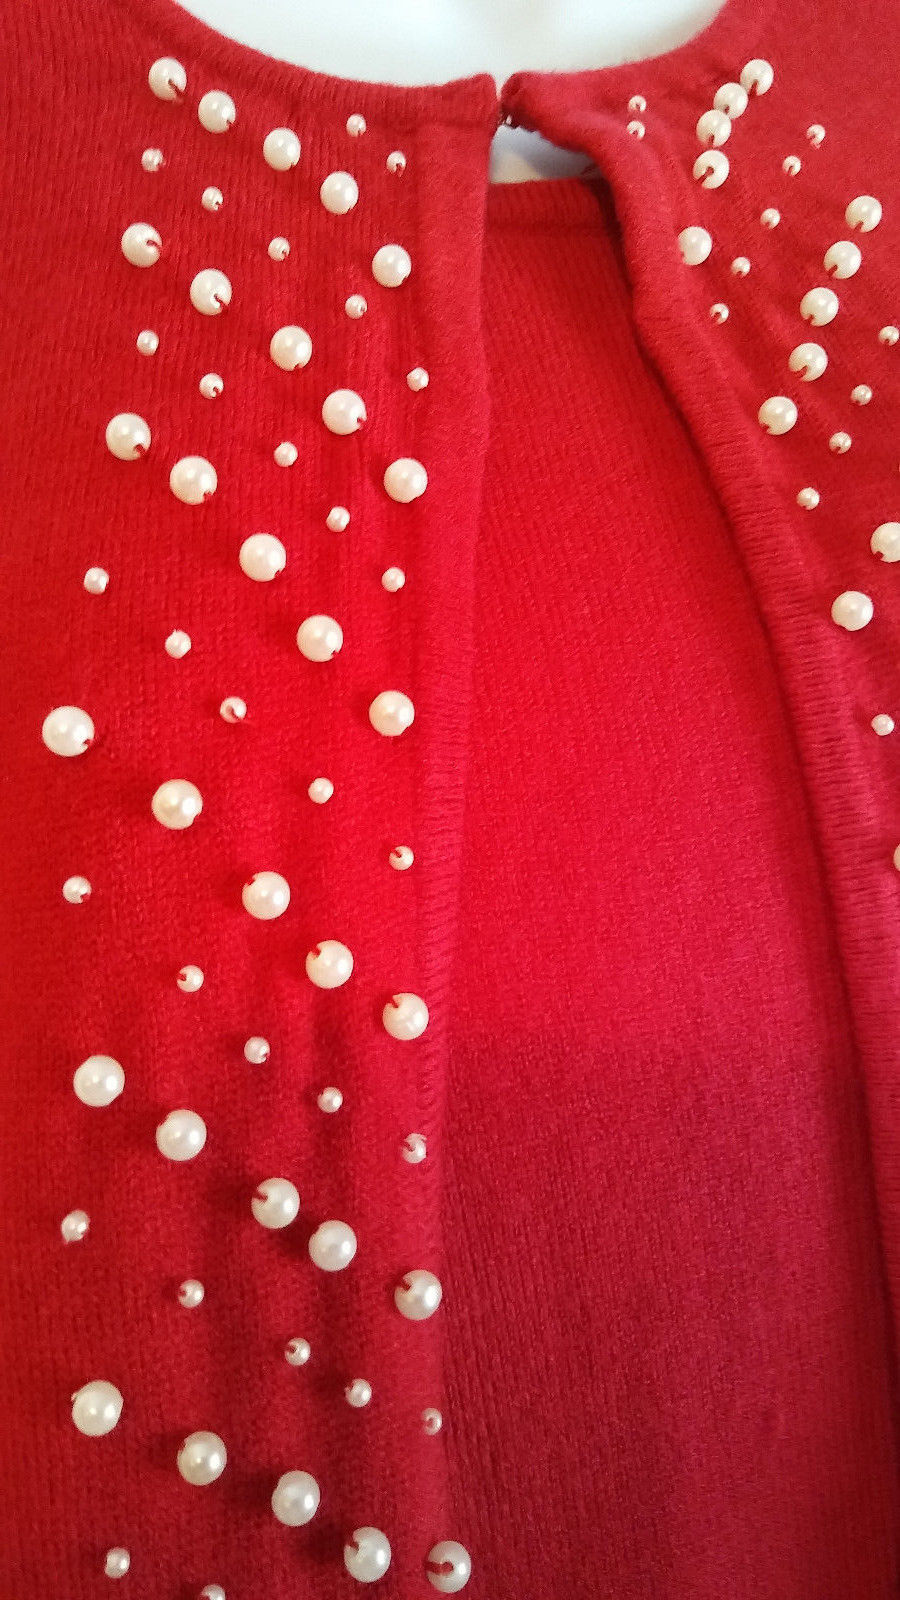 Kim Rogers Mock Layered  RED  Long Sleeve Sweater - SIZE SMALL  NEW WITH TAGS